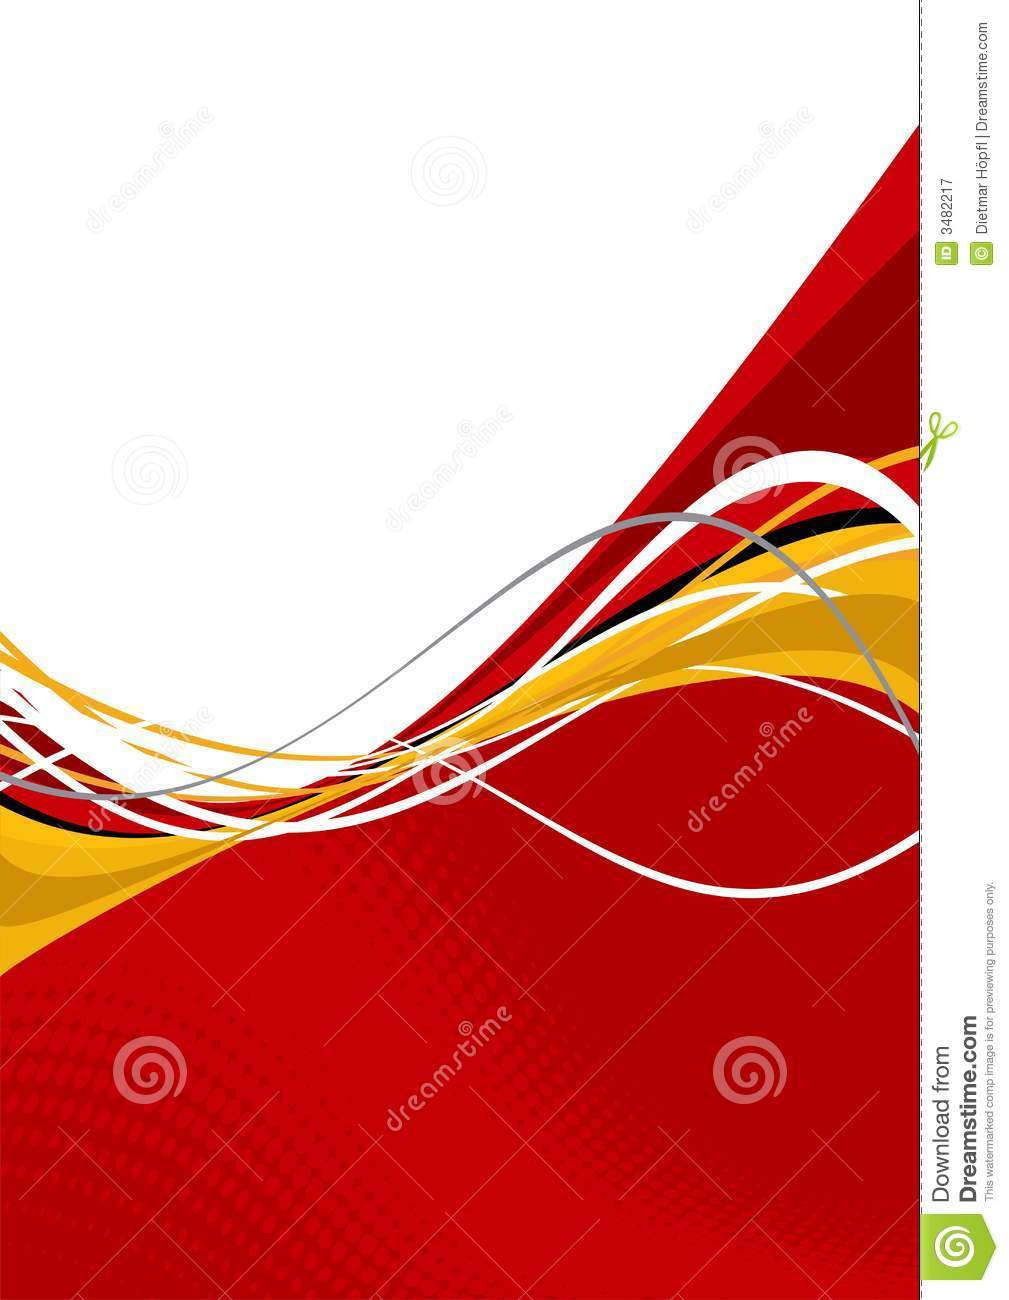 Wavy Red And White Design Royalty Free Stock Photography - Image ...